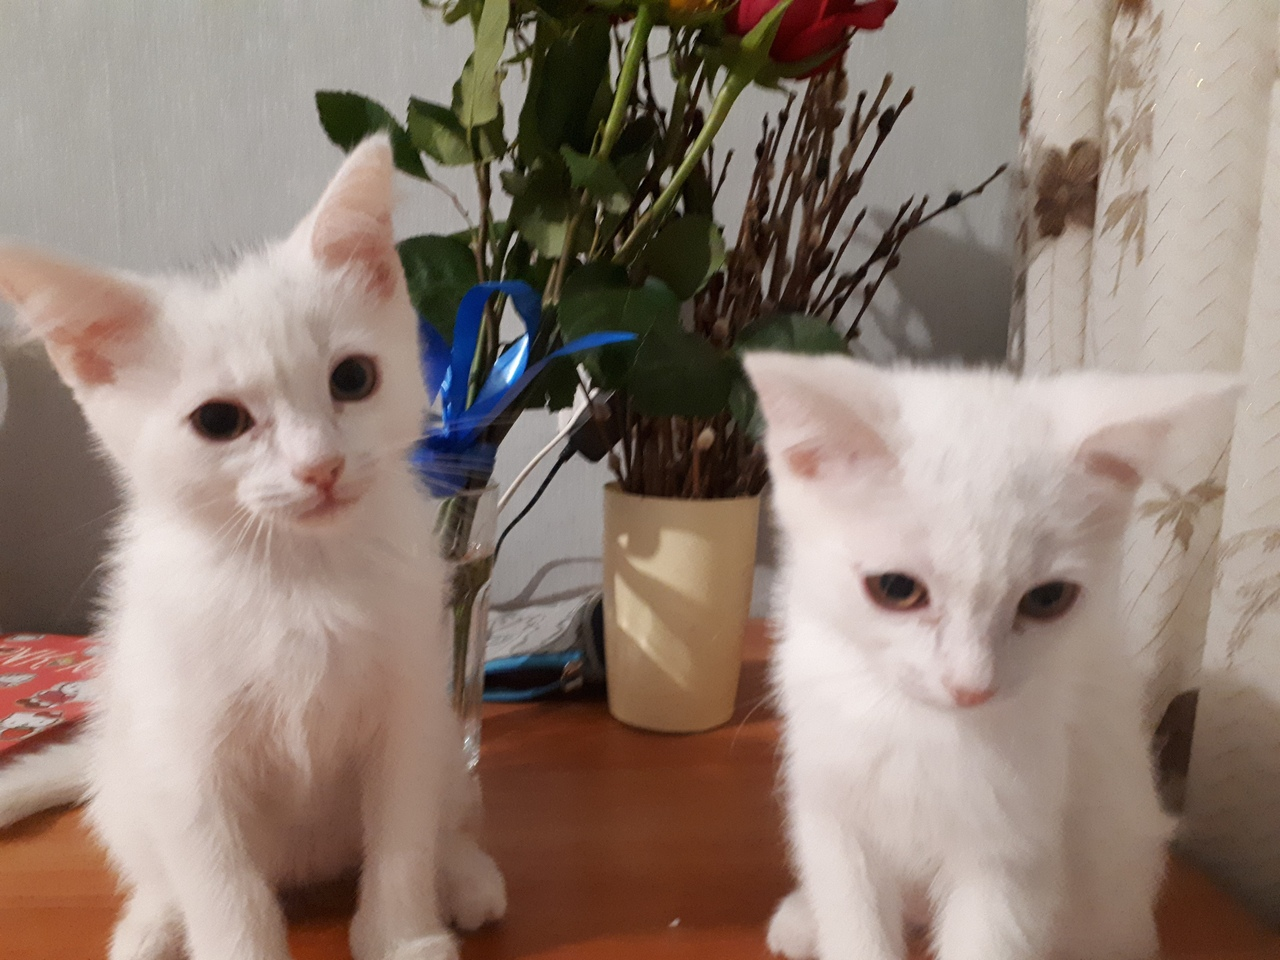 Will give kittens to gift